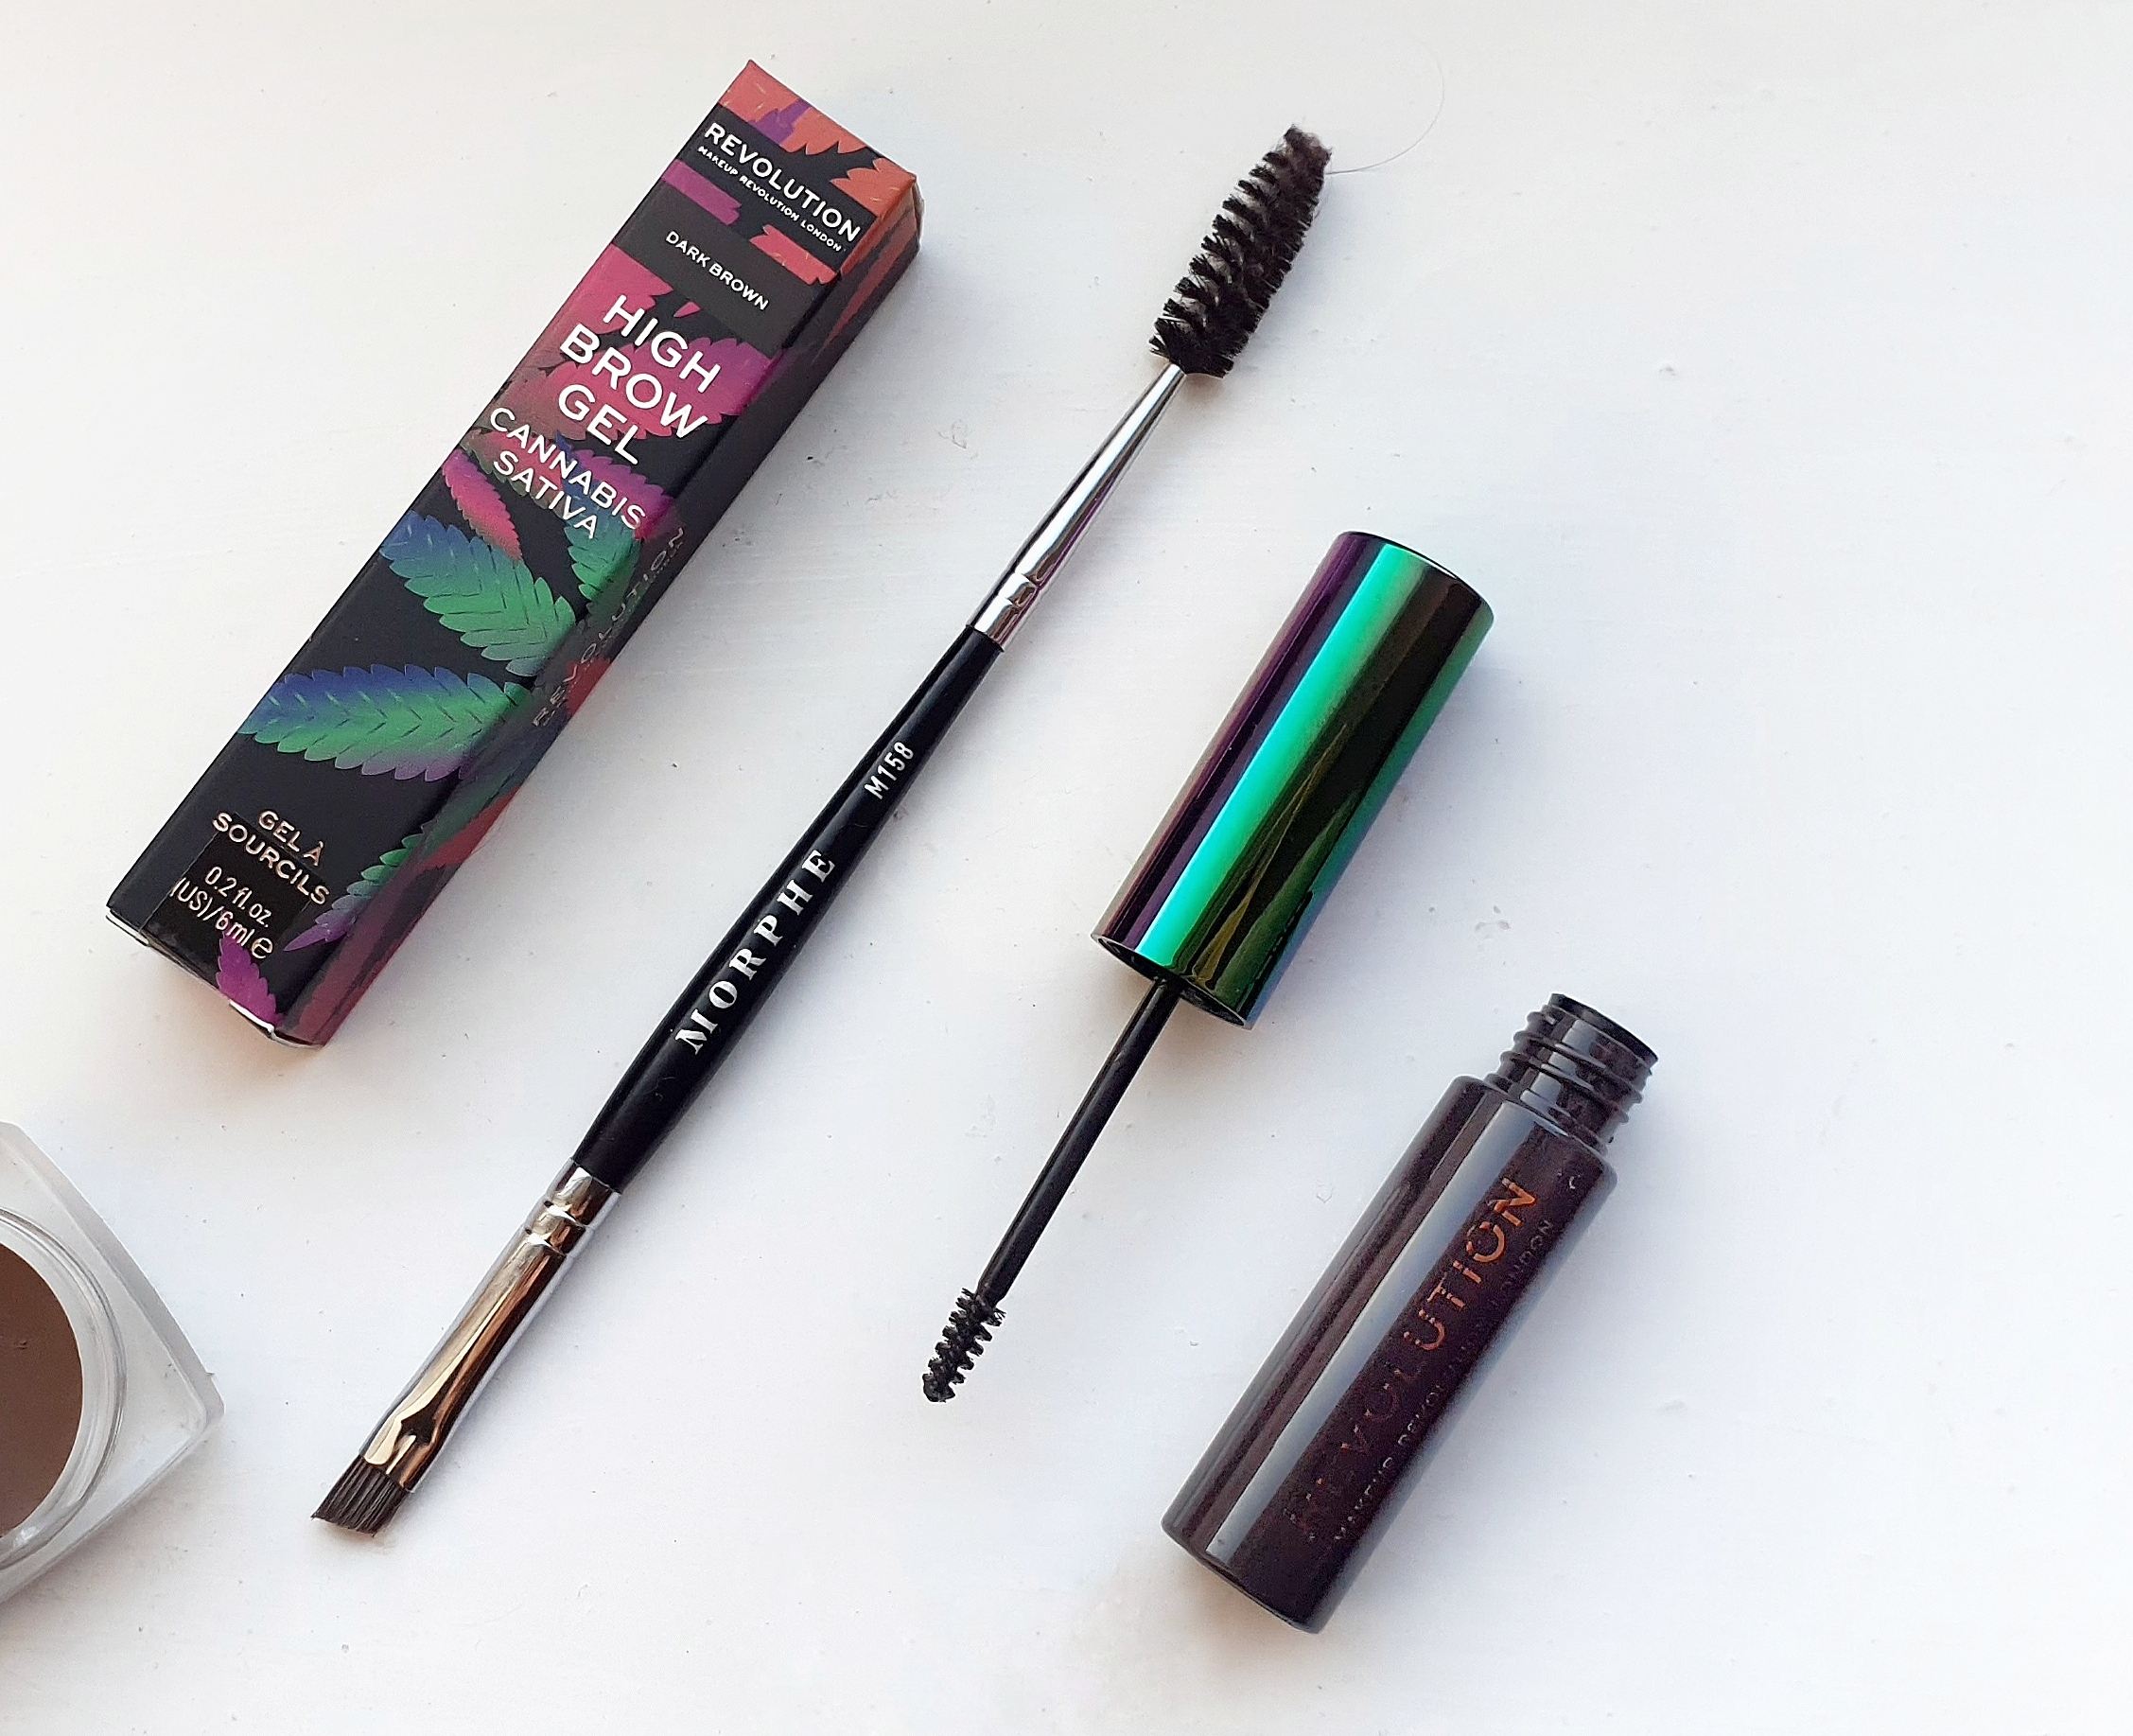 Makeup Revolution's Brow Gel in 'Dark Brown'